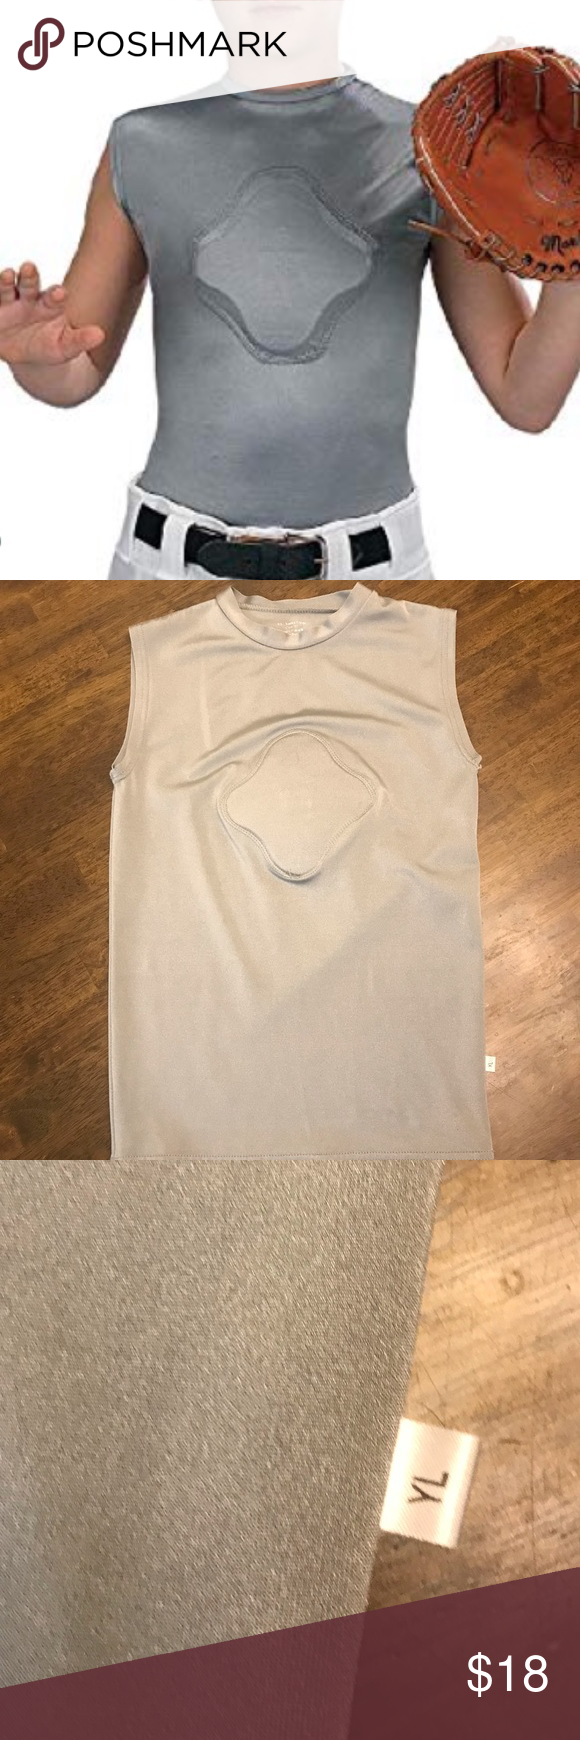 Markwort Youth Heart-Gard Protective Compression Body Shirt White